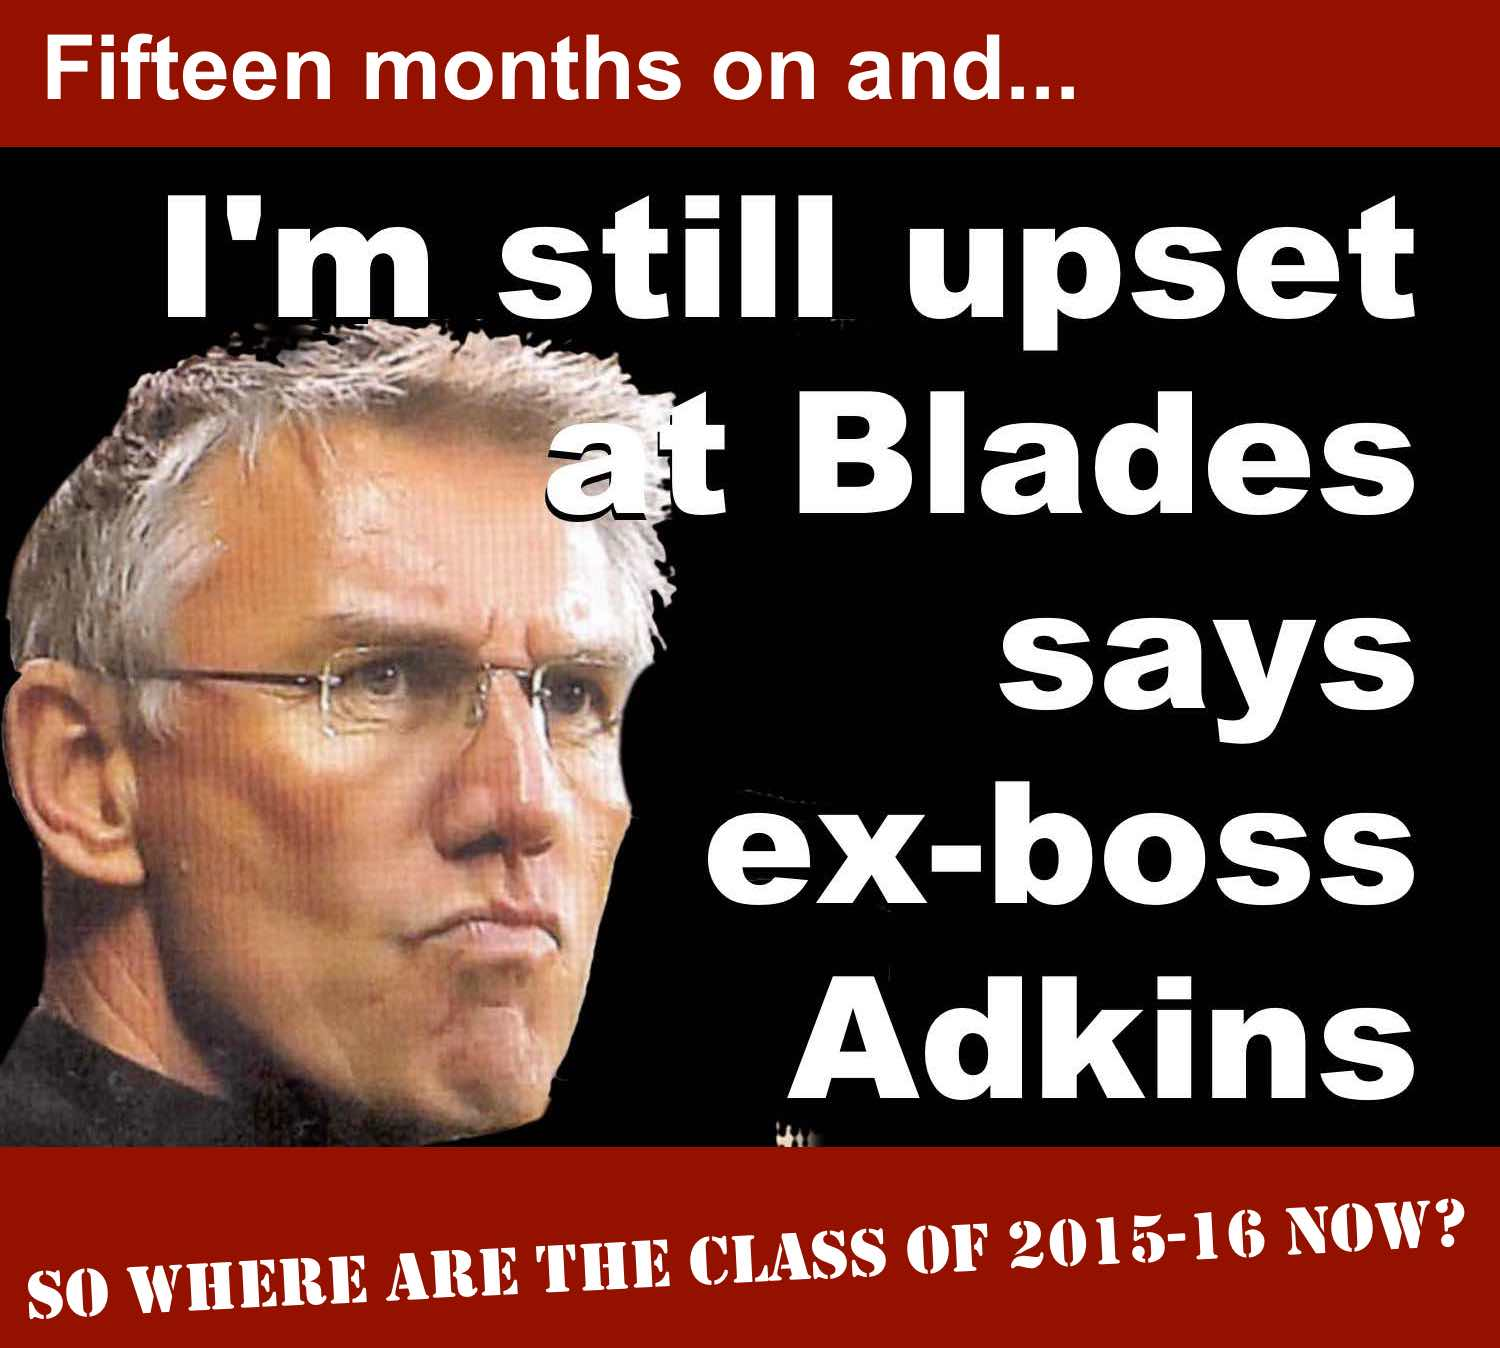 Former Sheffield United boss Nigel Adkins is still upset about being sacked fifteen months after being forced out at Bramall Lane